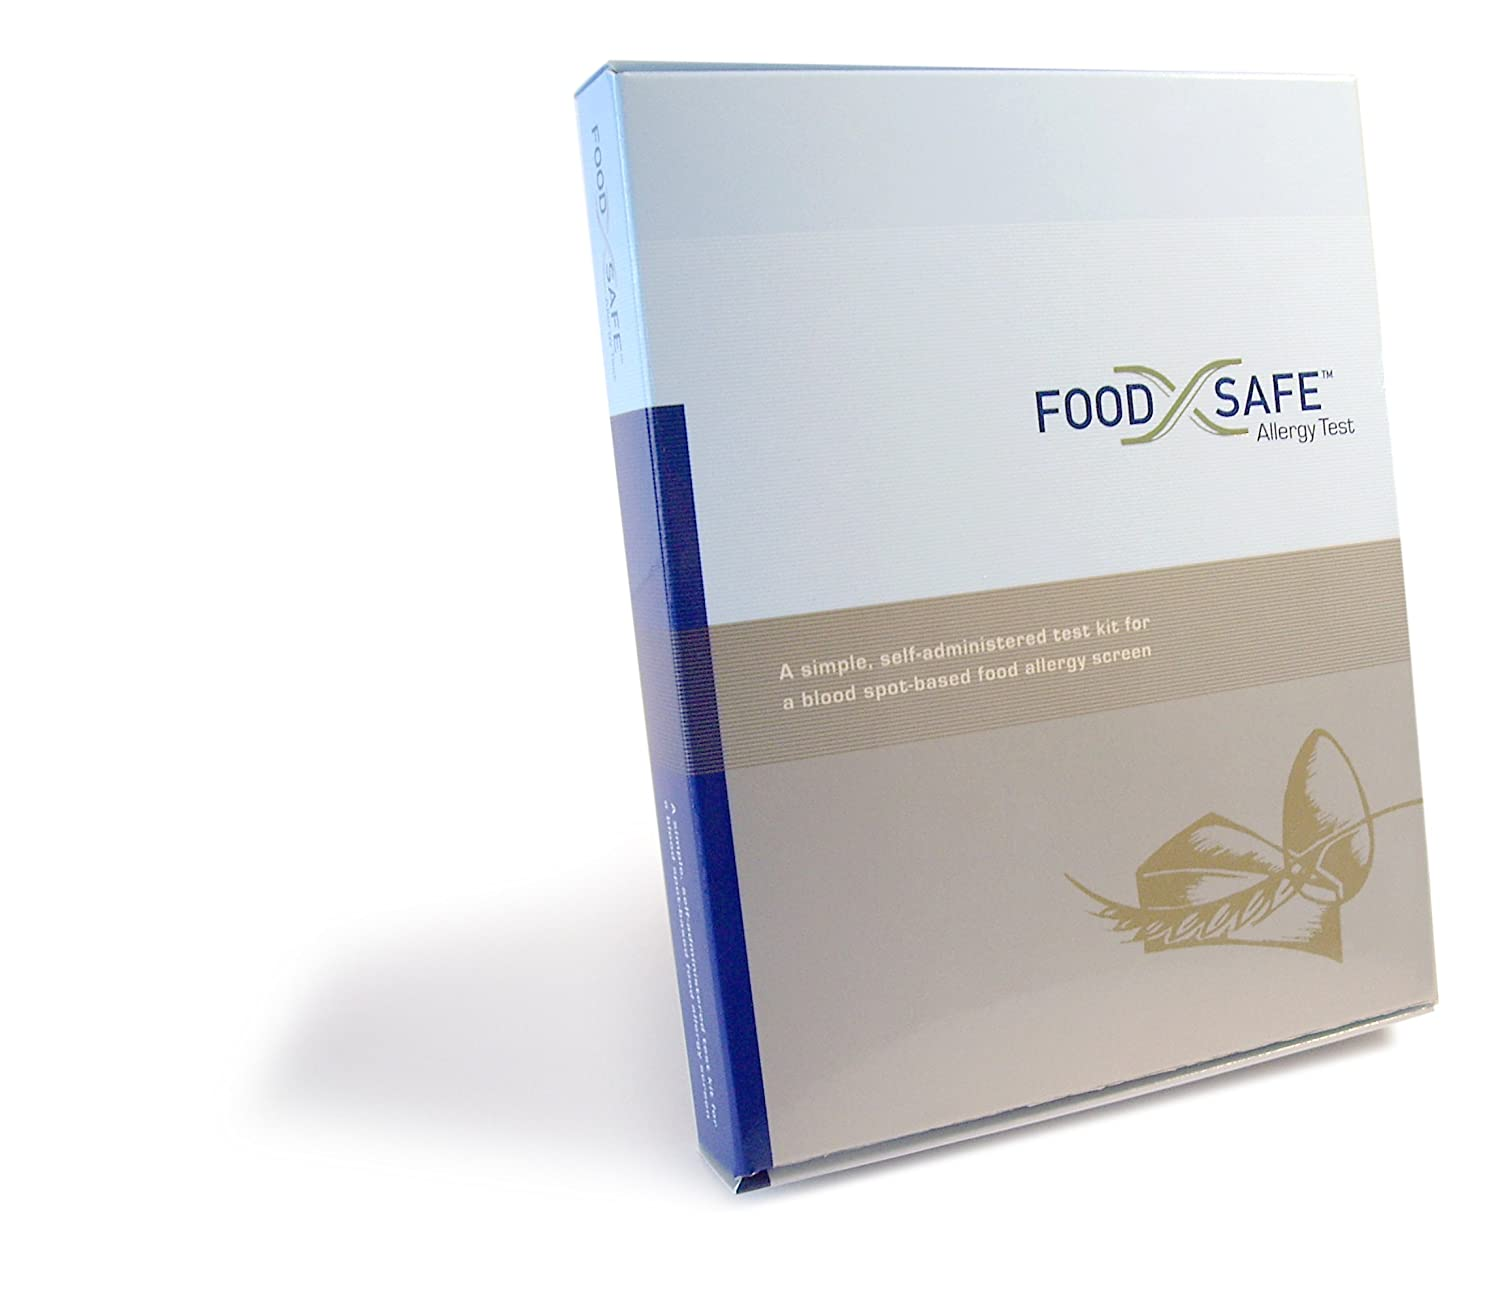 amazon com food safe allergy test health personal care